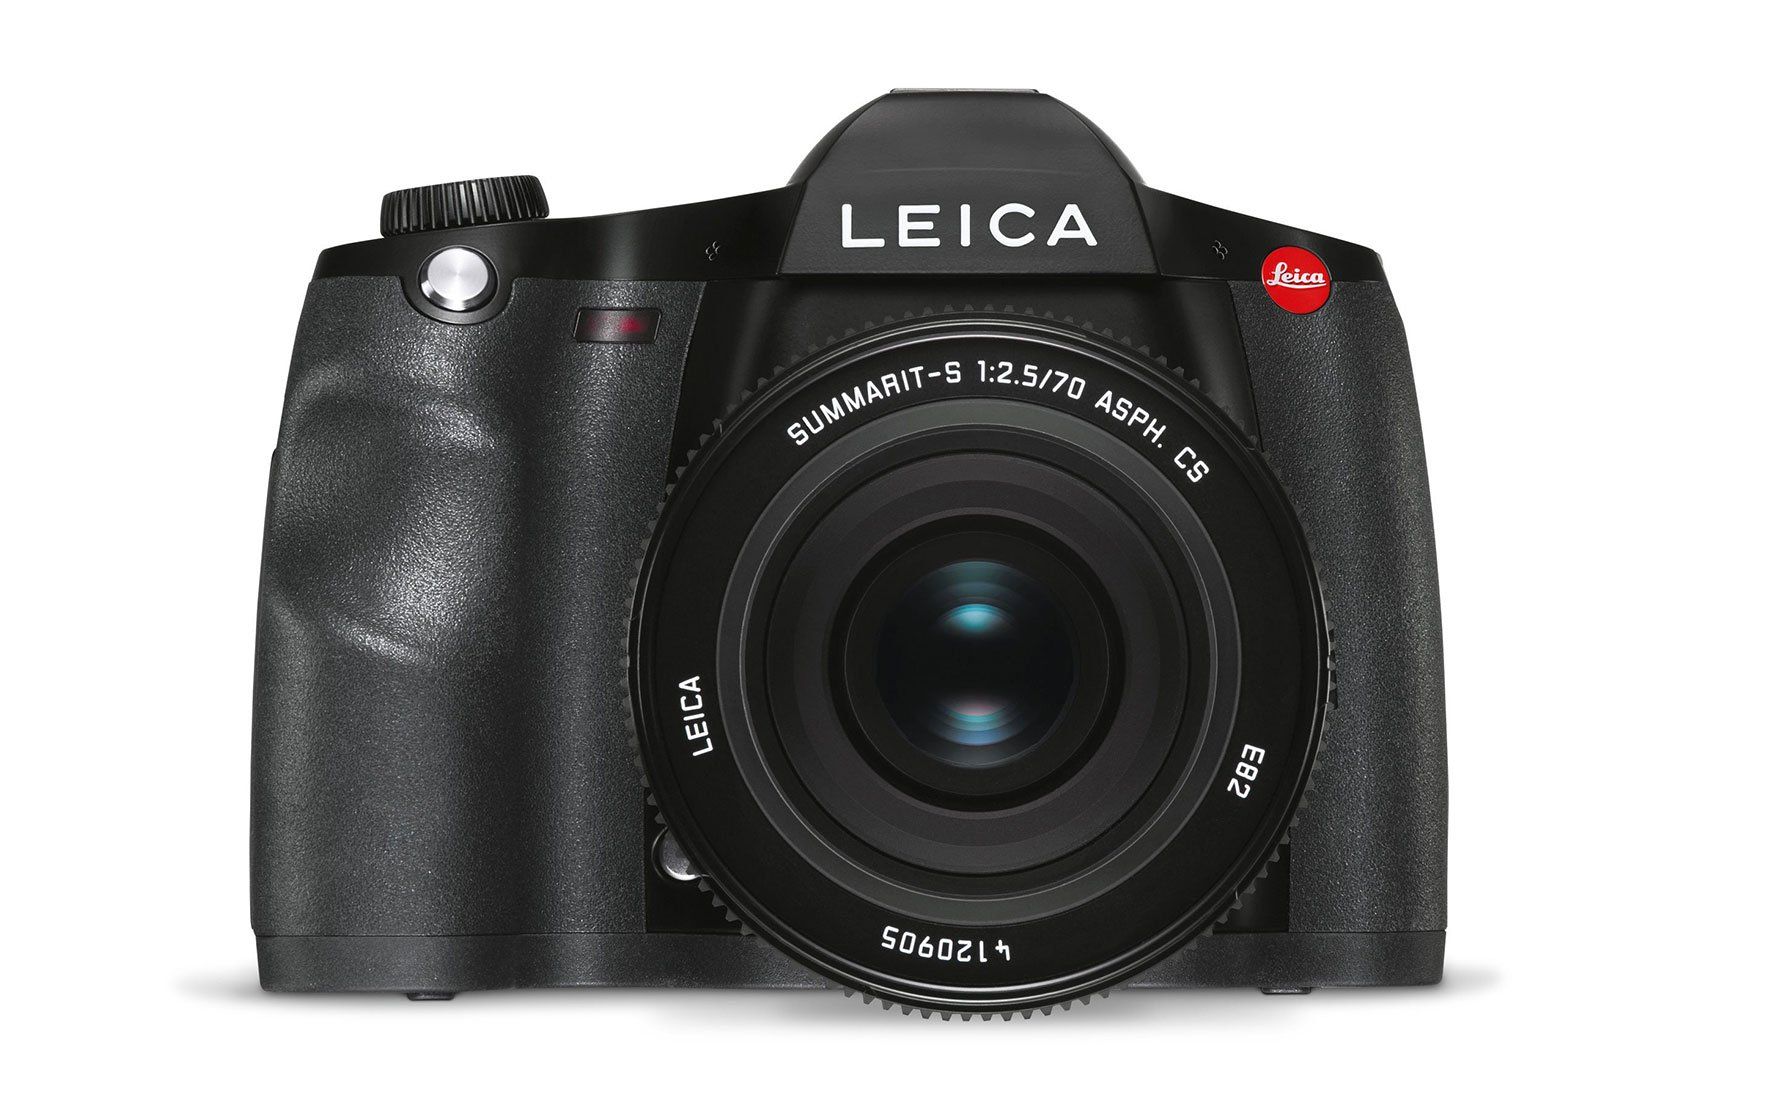 best cameras for photography - The Leica S